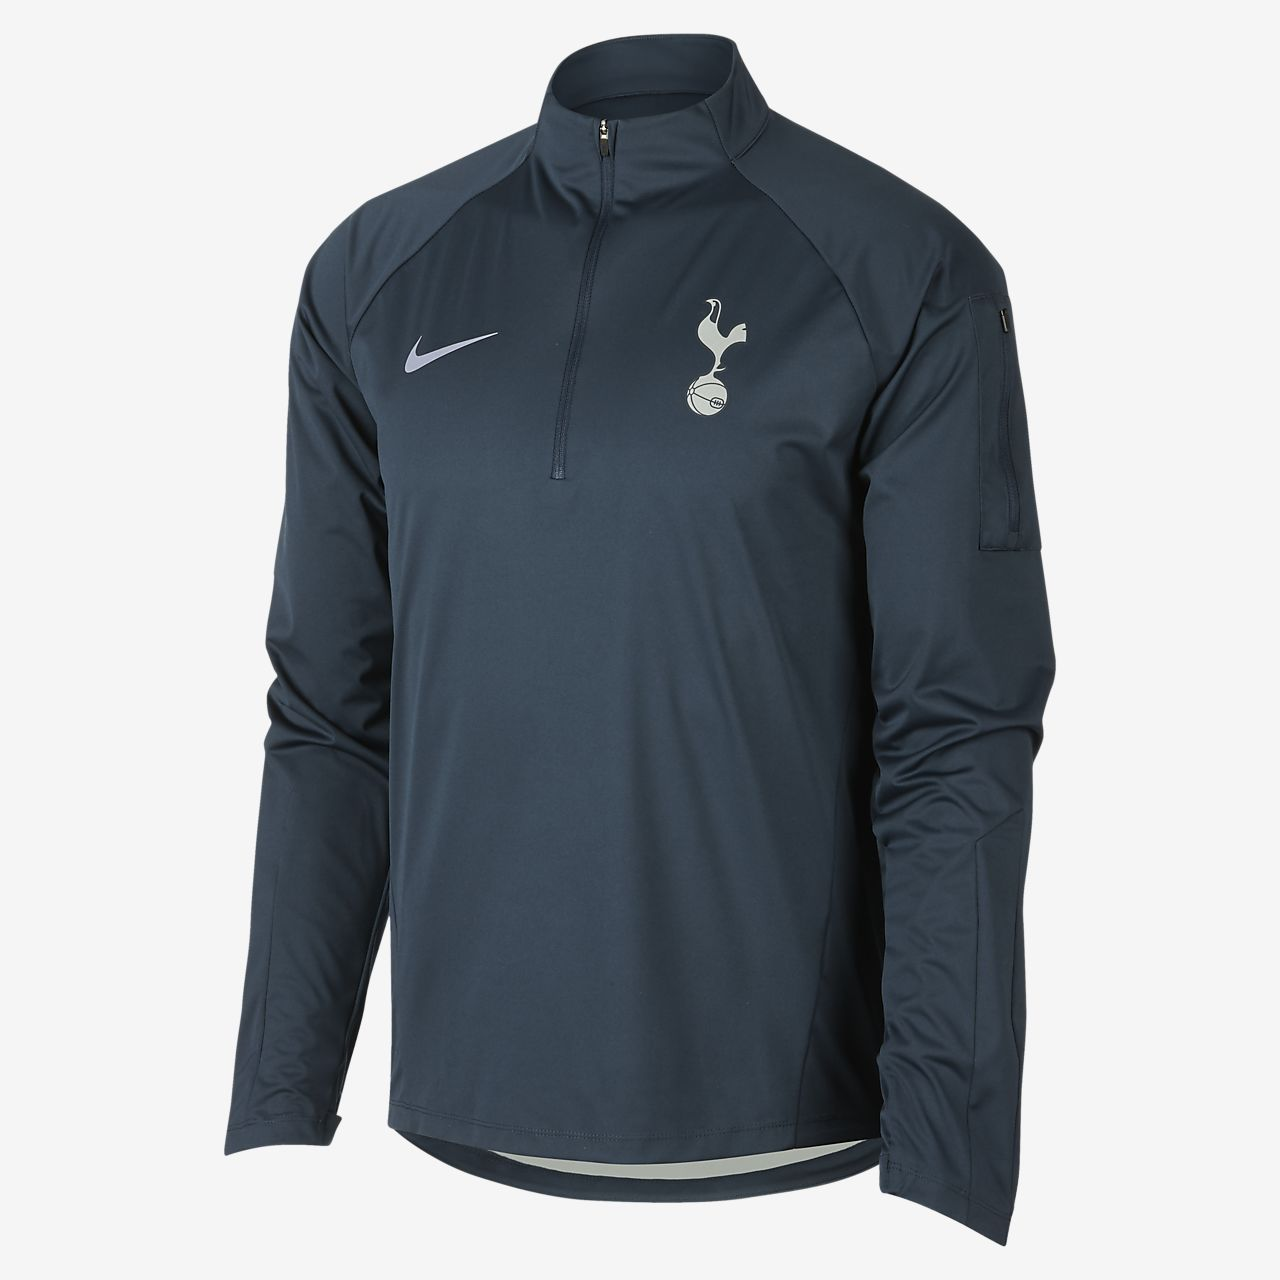 f735581835e0 Nike Shield Tottenham Hotspur Squad Men s Football Drill Top. Nike ...